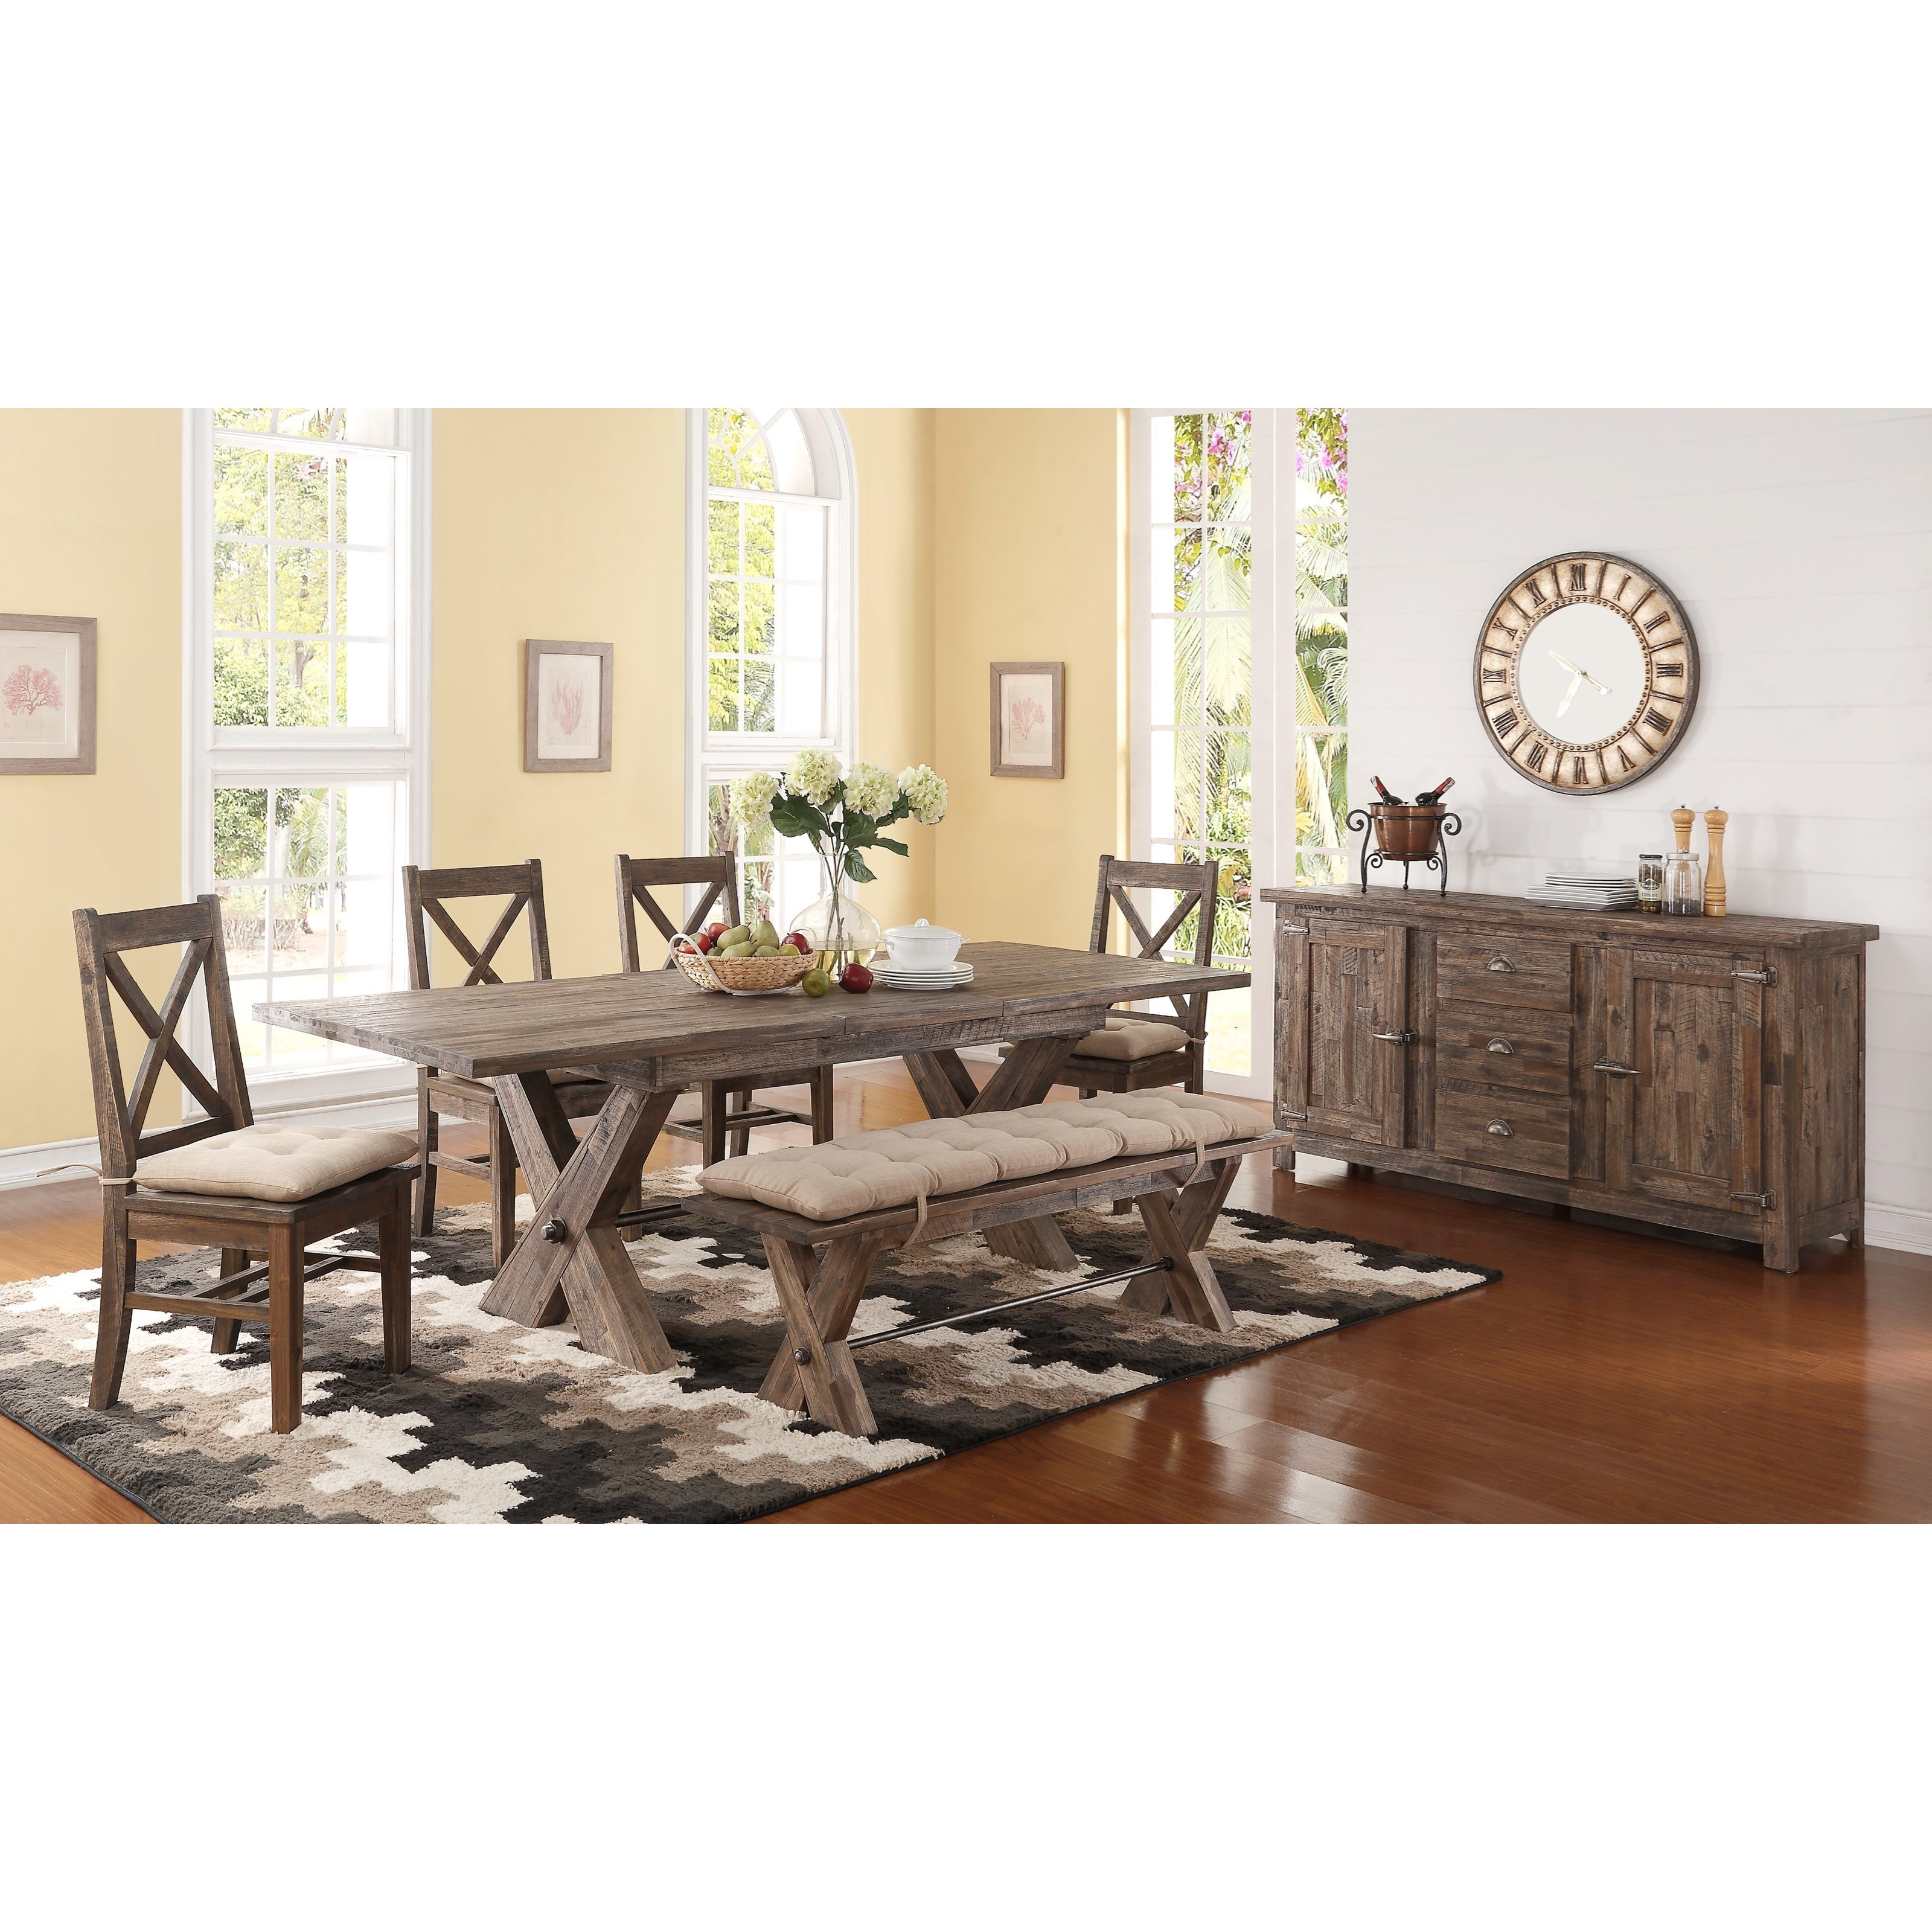 New classic dining room furniture